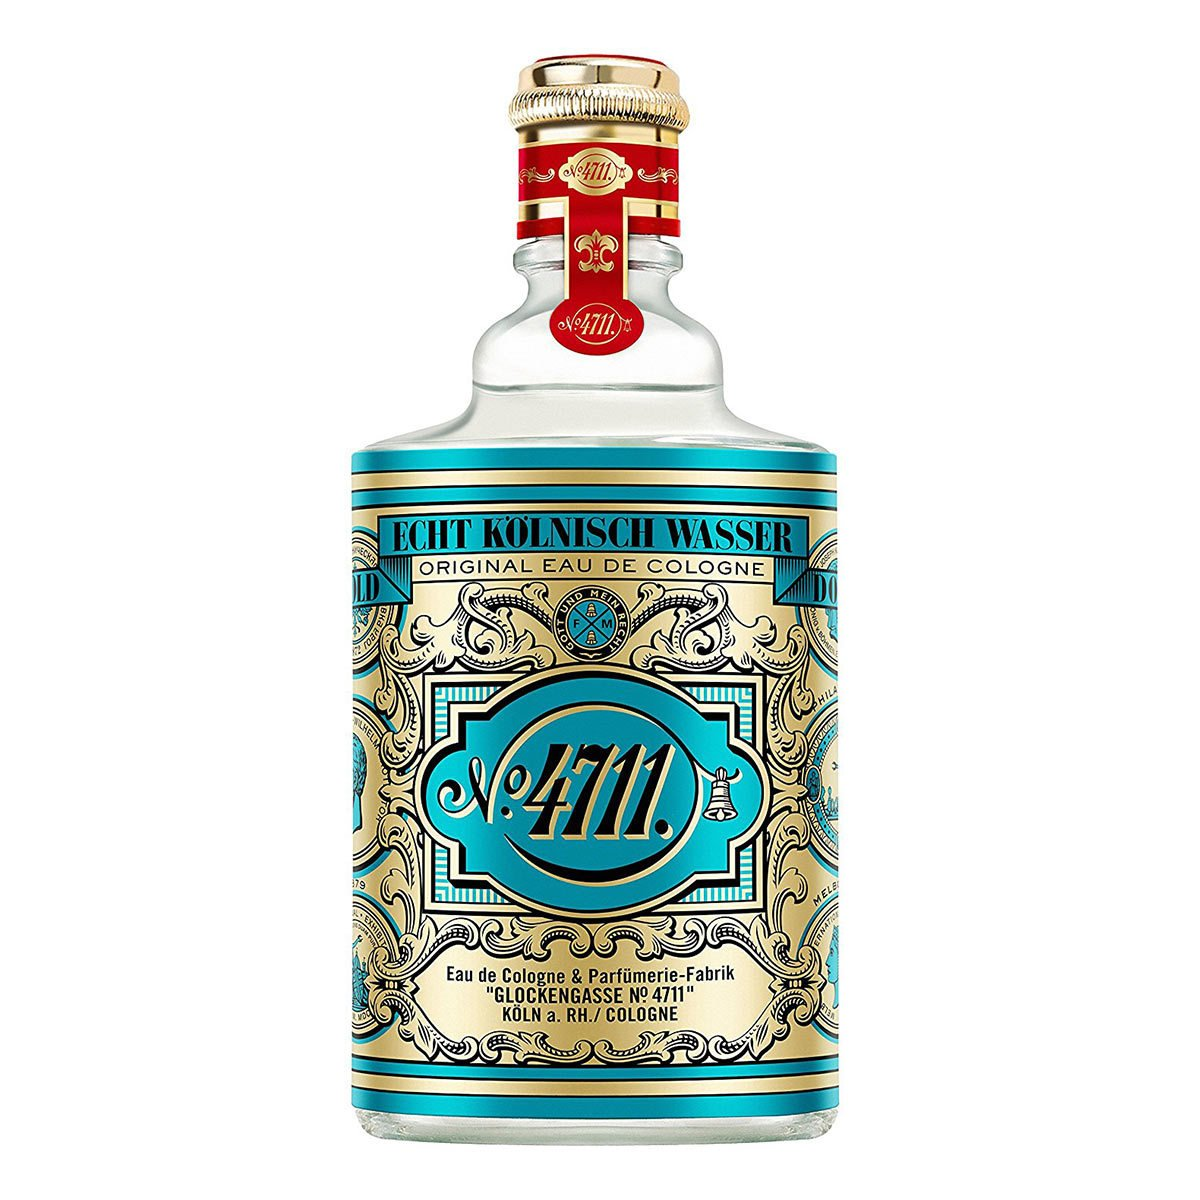 4711 By Muelhens For Men. Eau De Cologne Splash 27.1 Fl.Oz by Muelhens